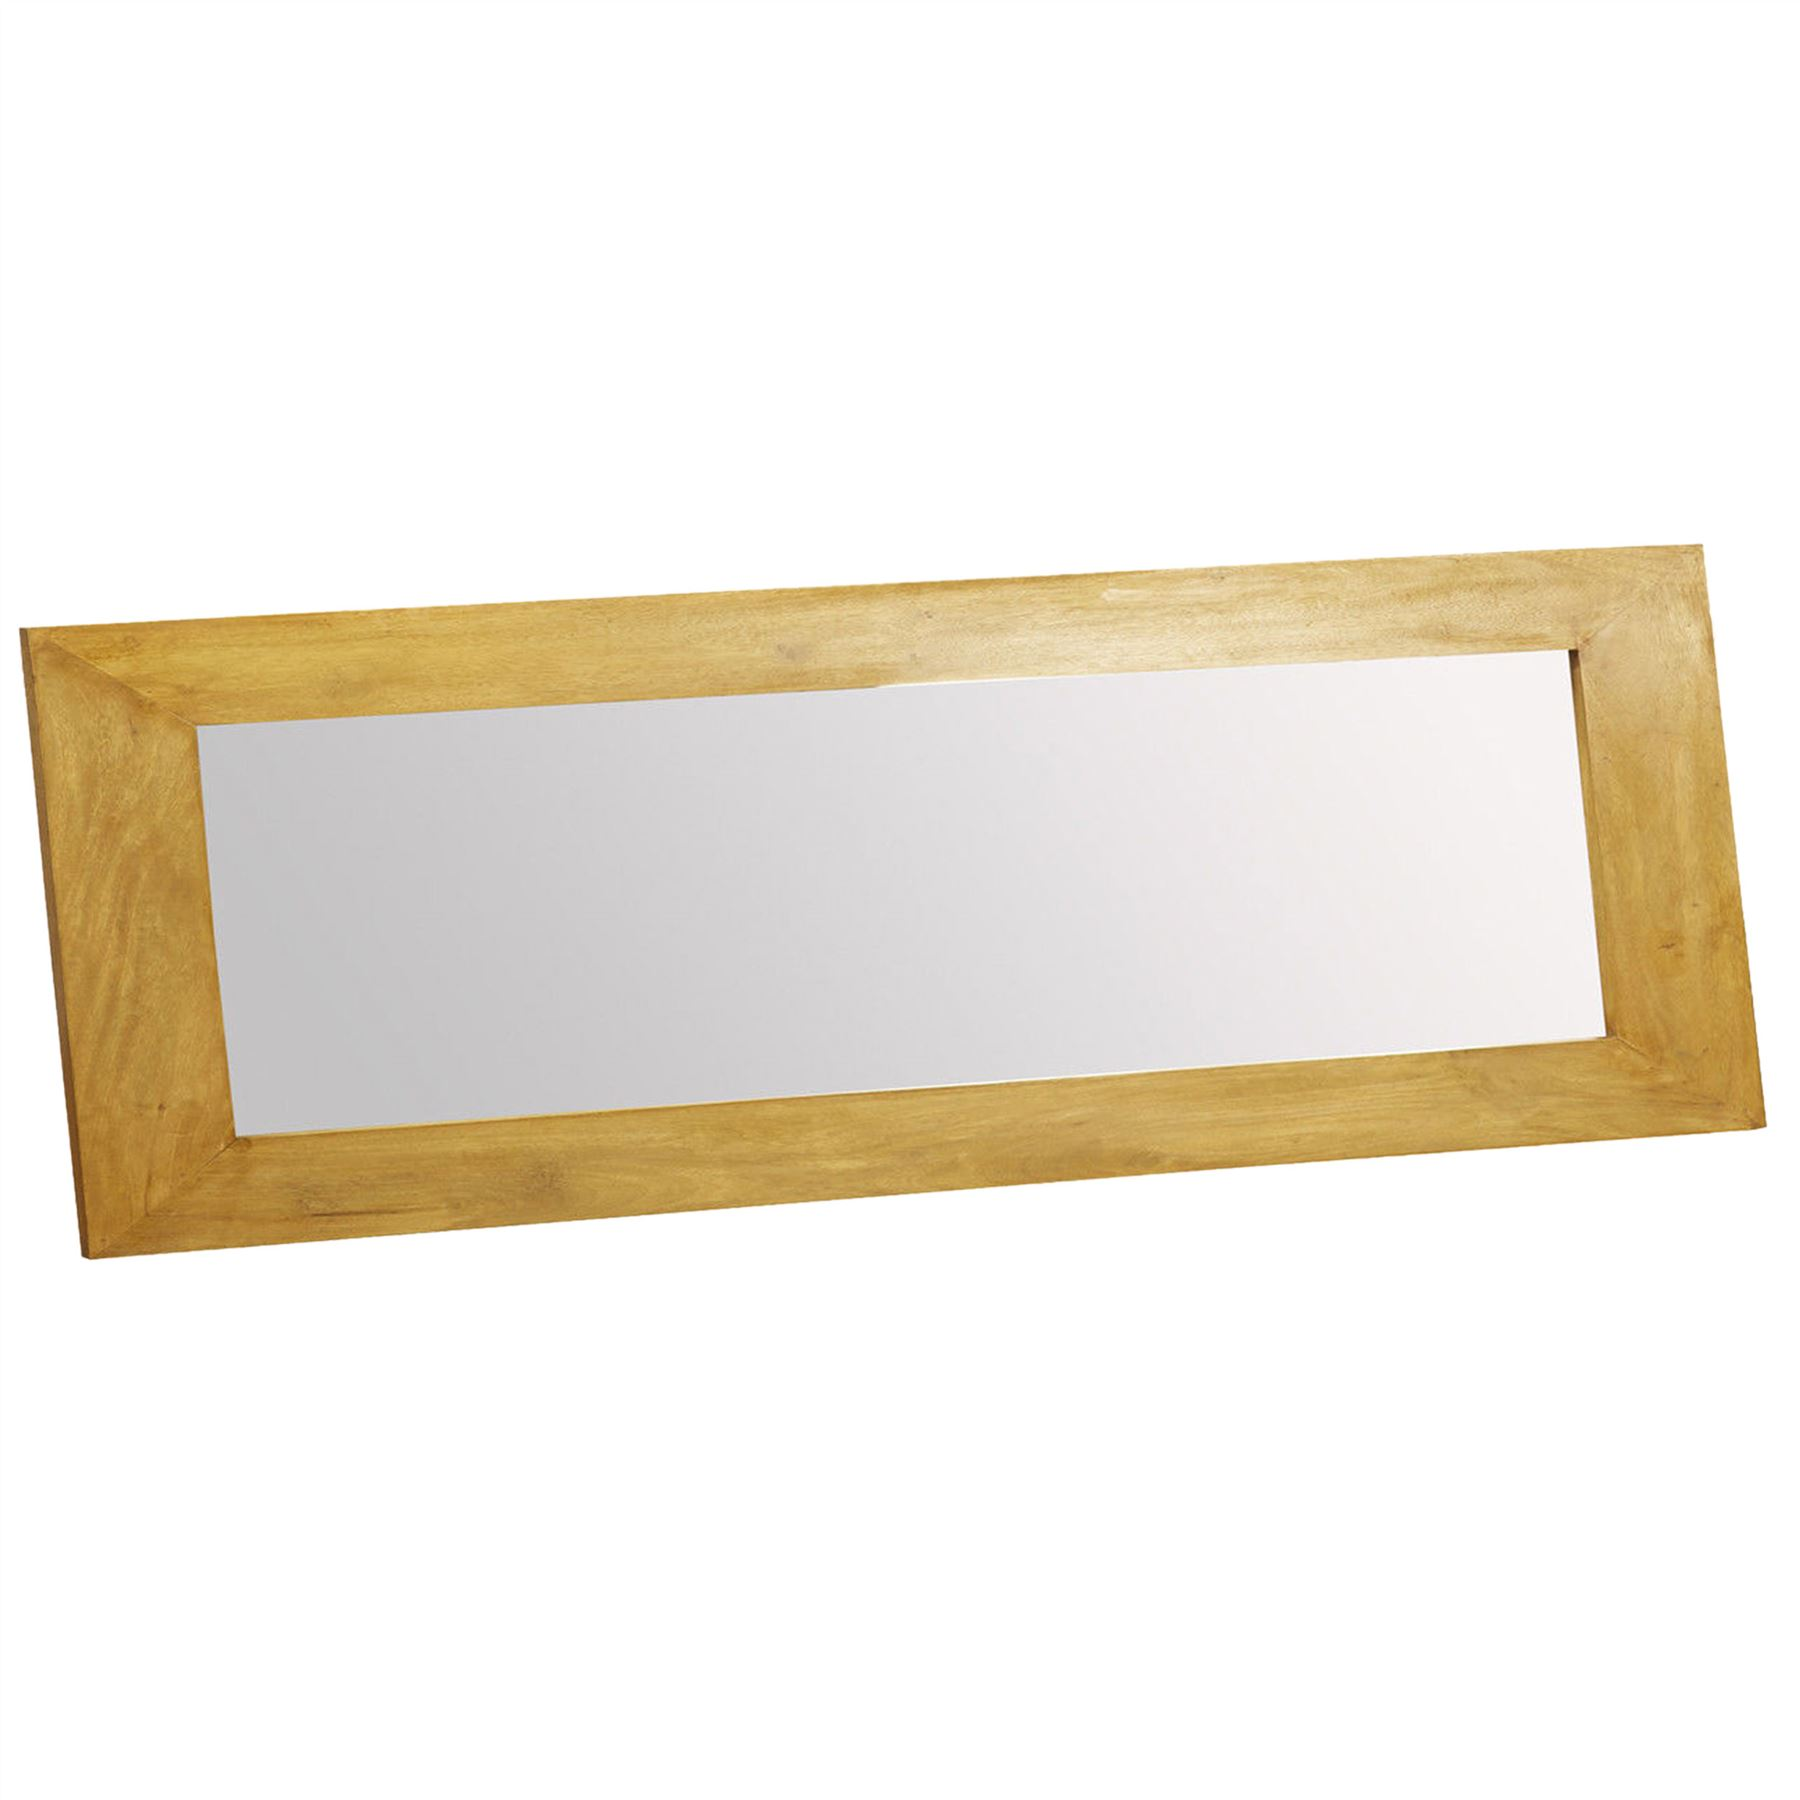 Dakota Solid Wood Frame Mirrors Oak Shade Overmantle Small, Large ...